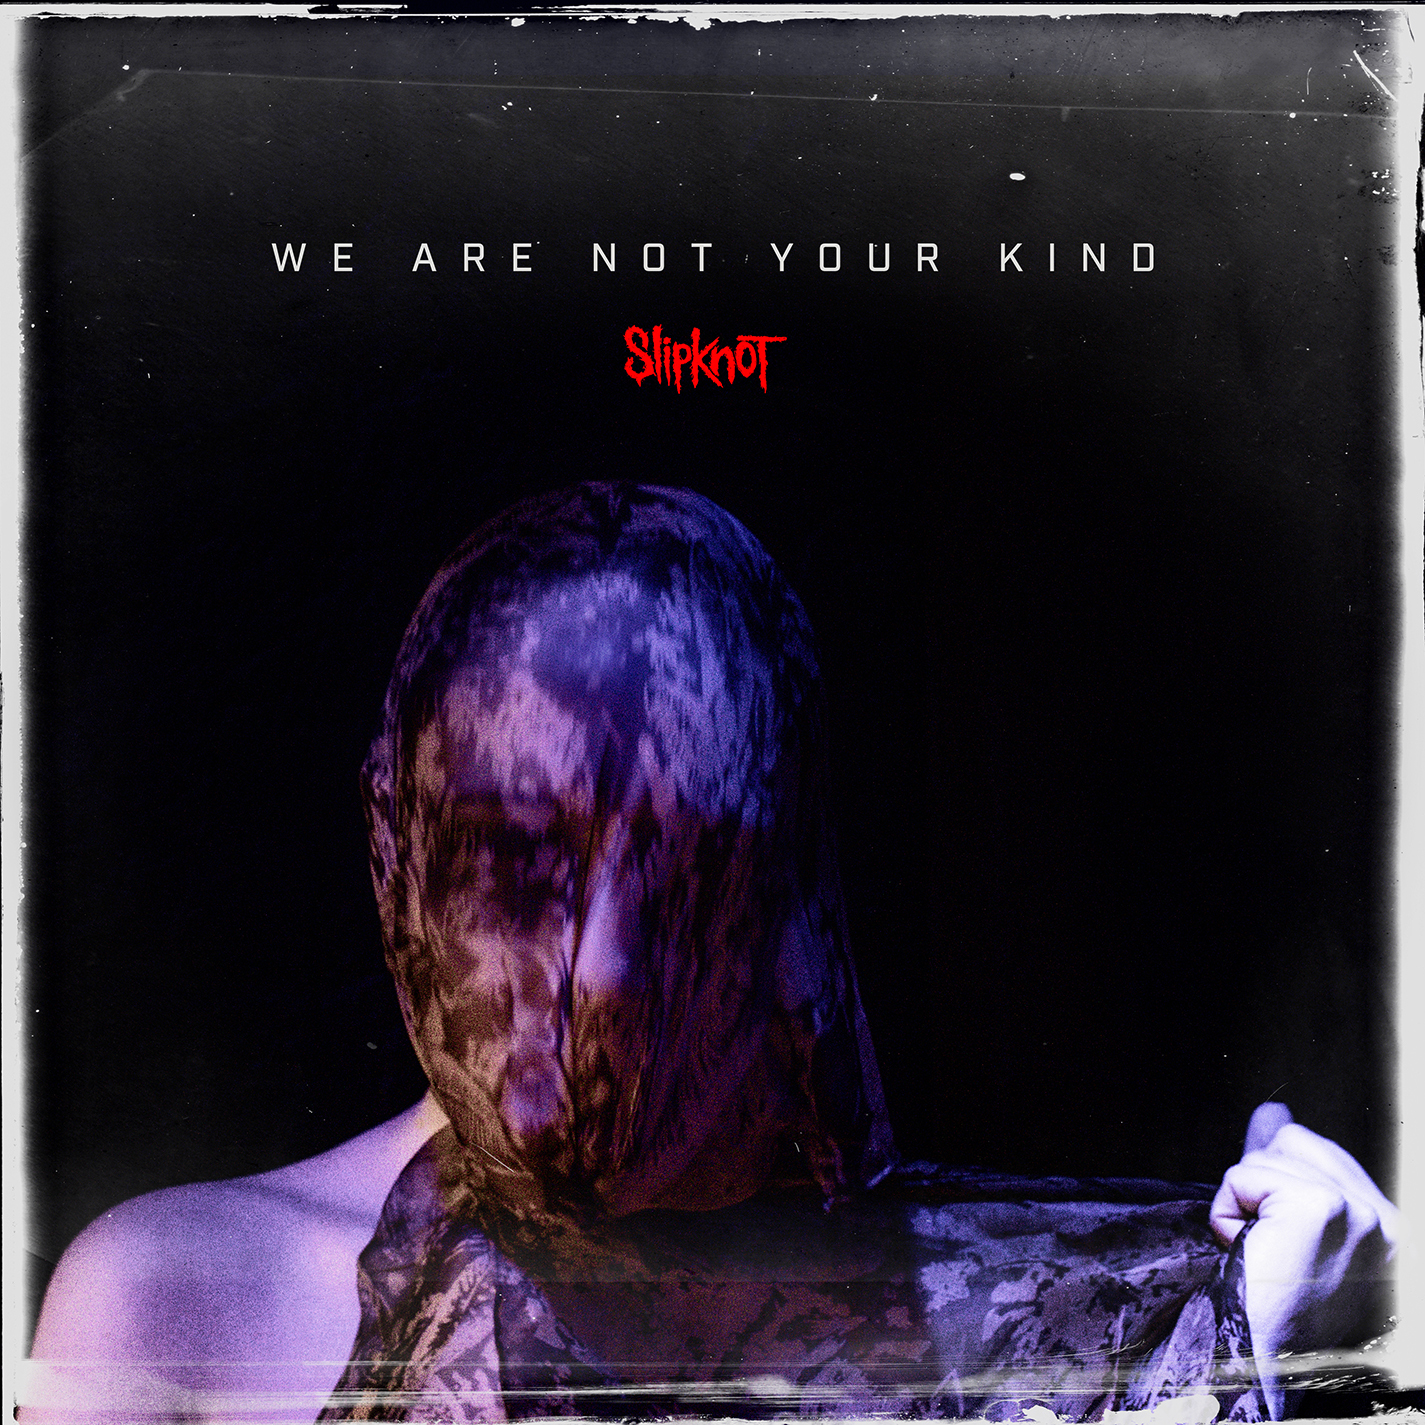 We Are Not Your Kind by Slipknot image